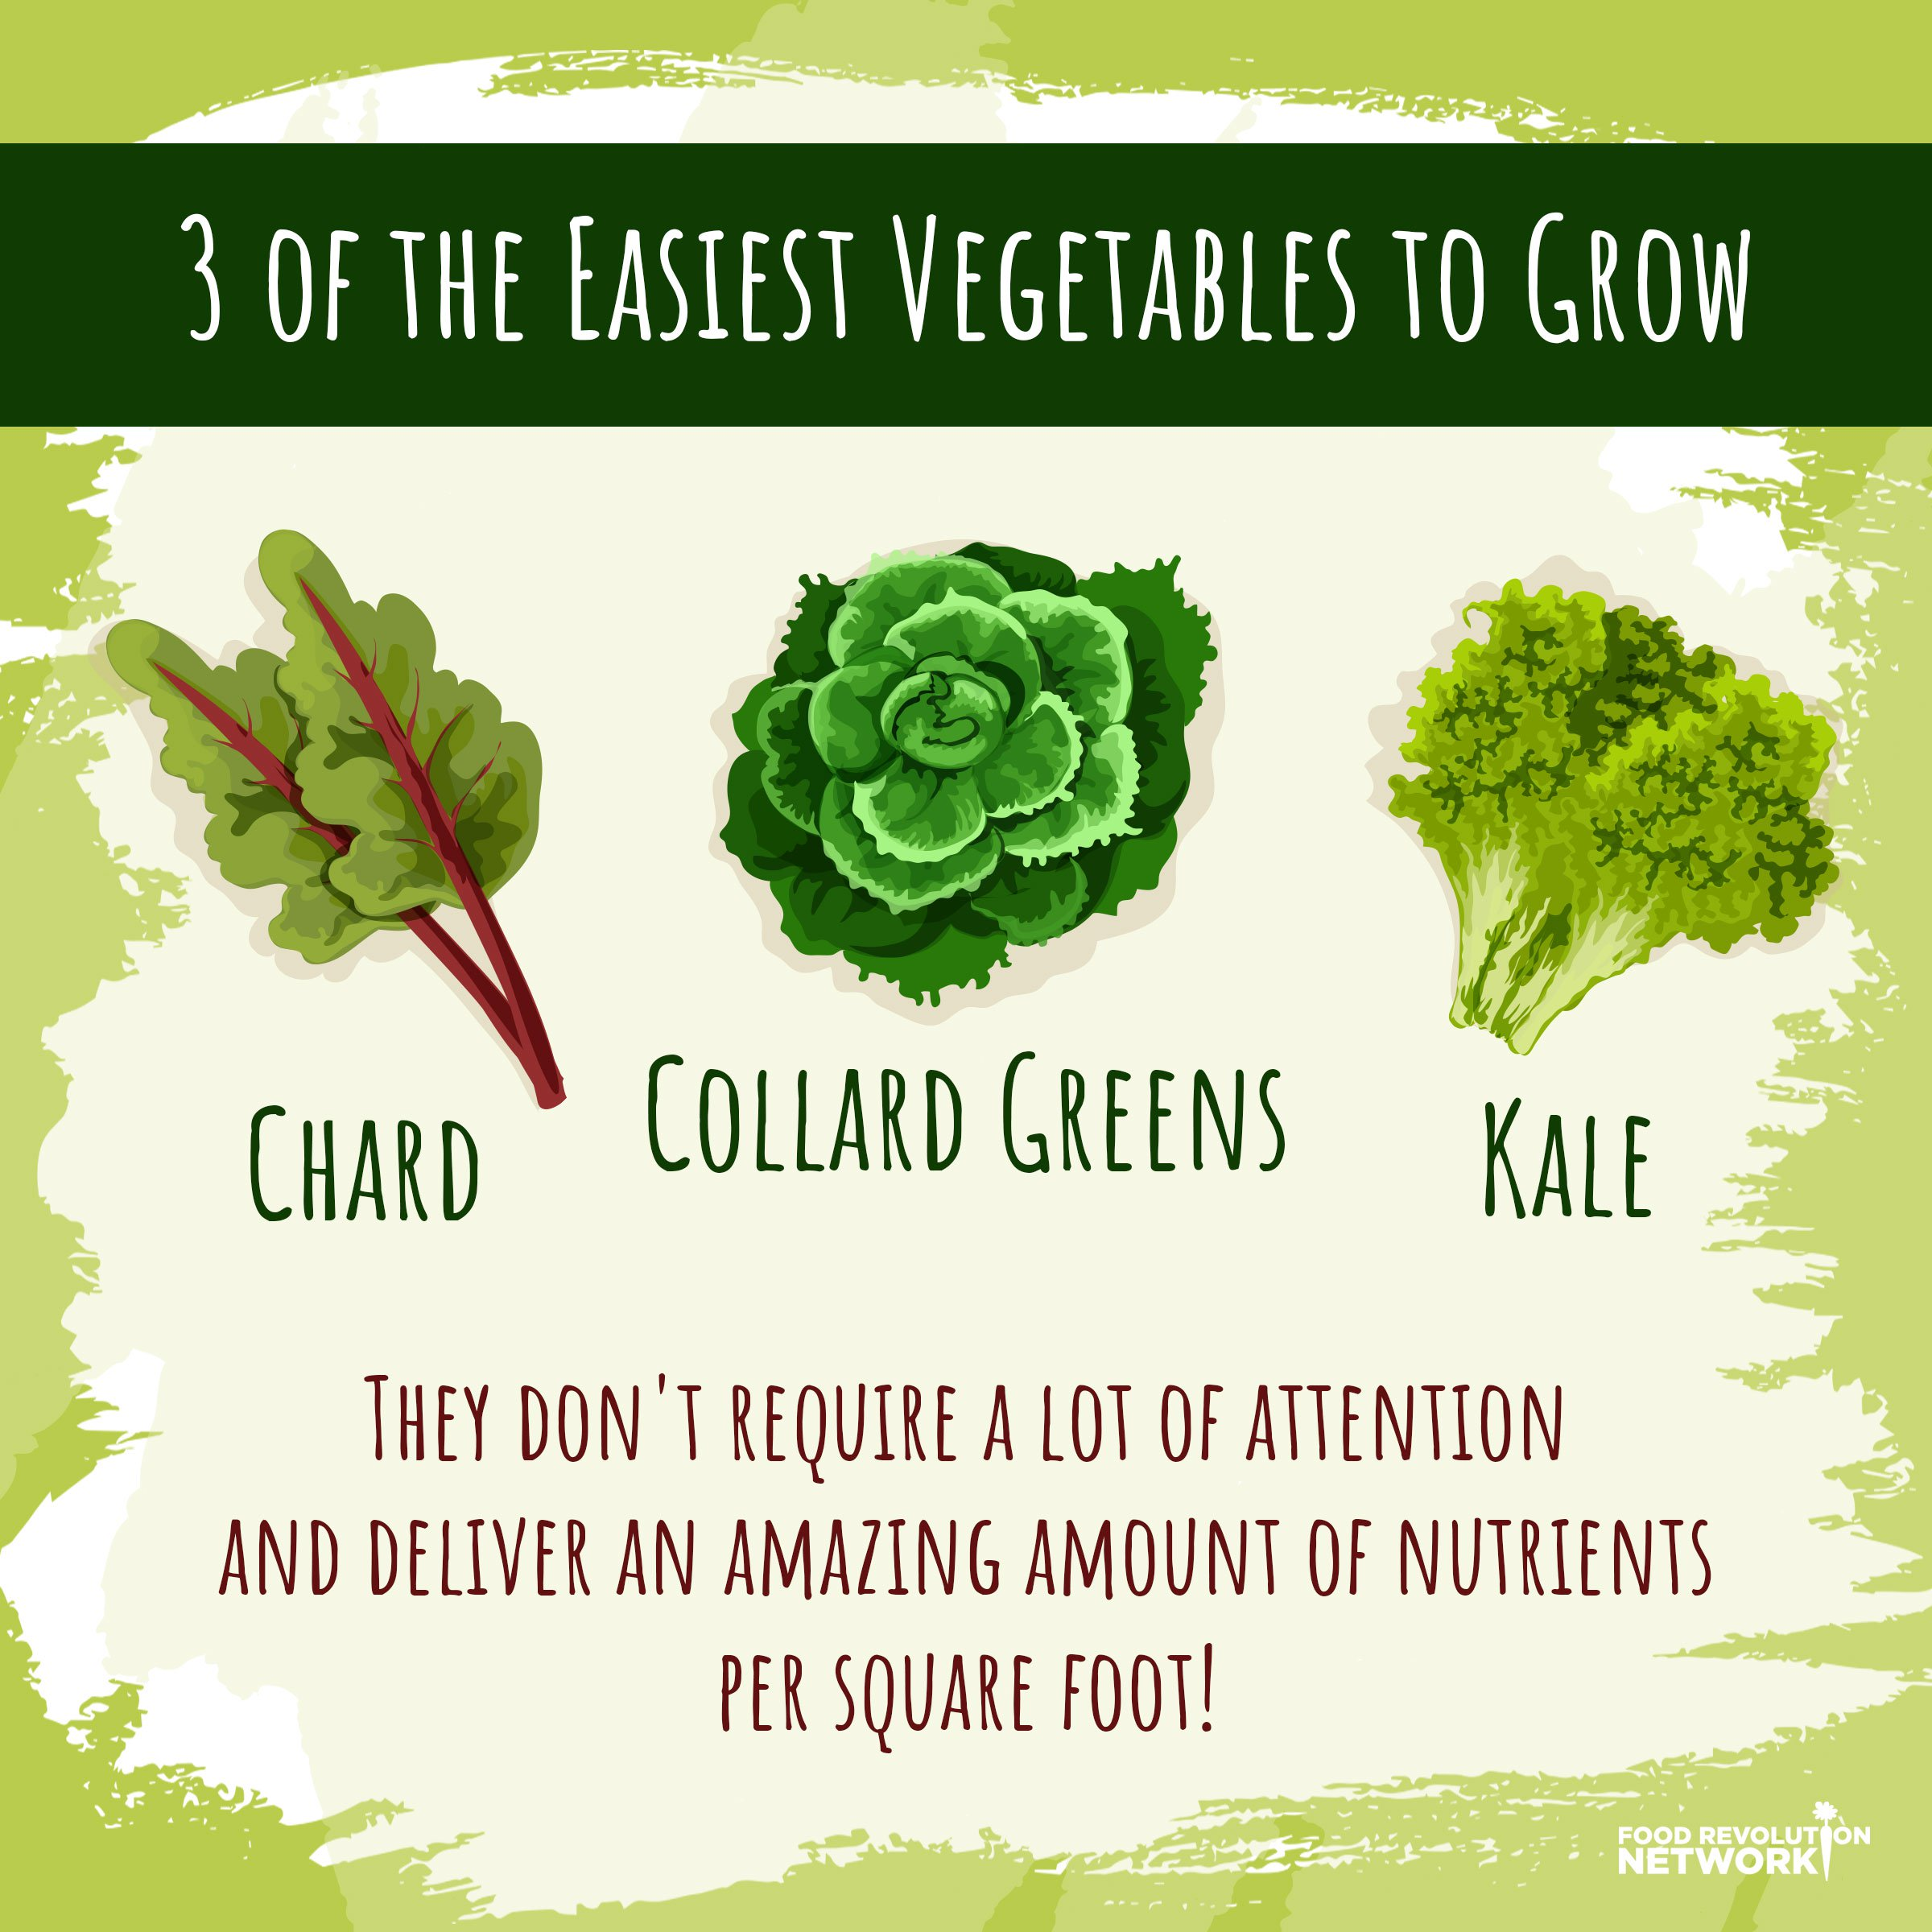 3 easiest vegetables to grow infographic